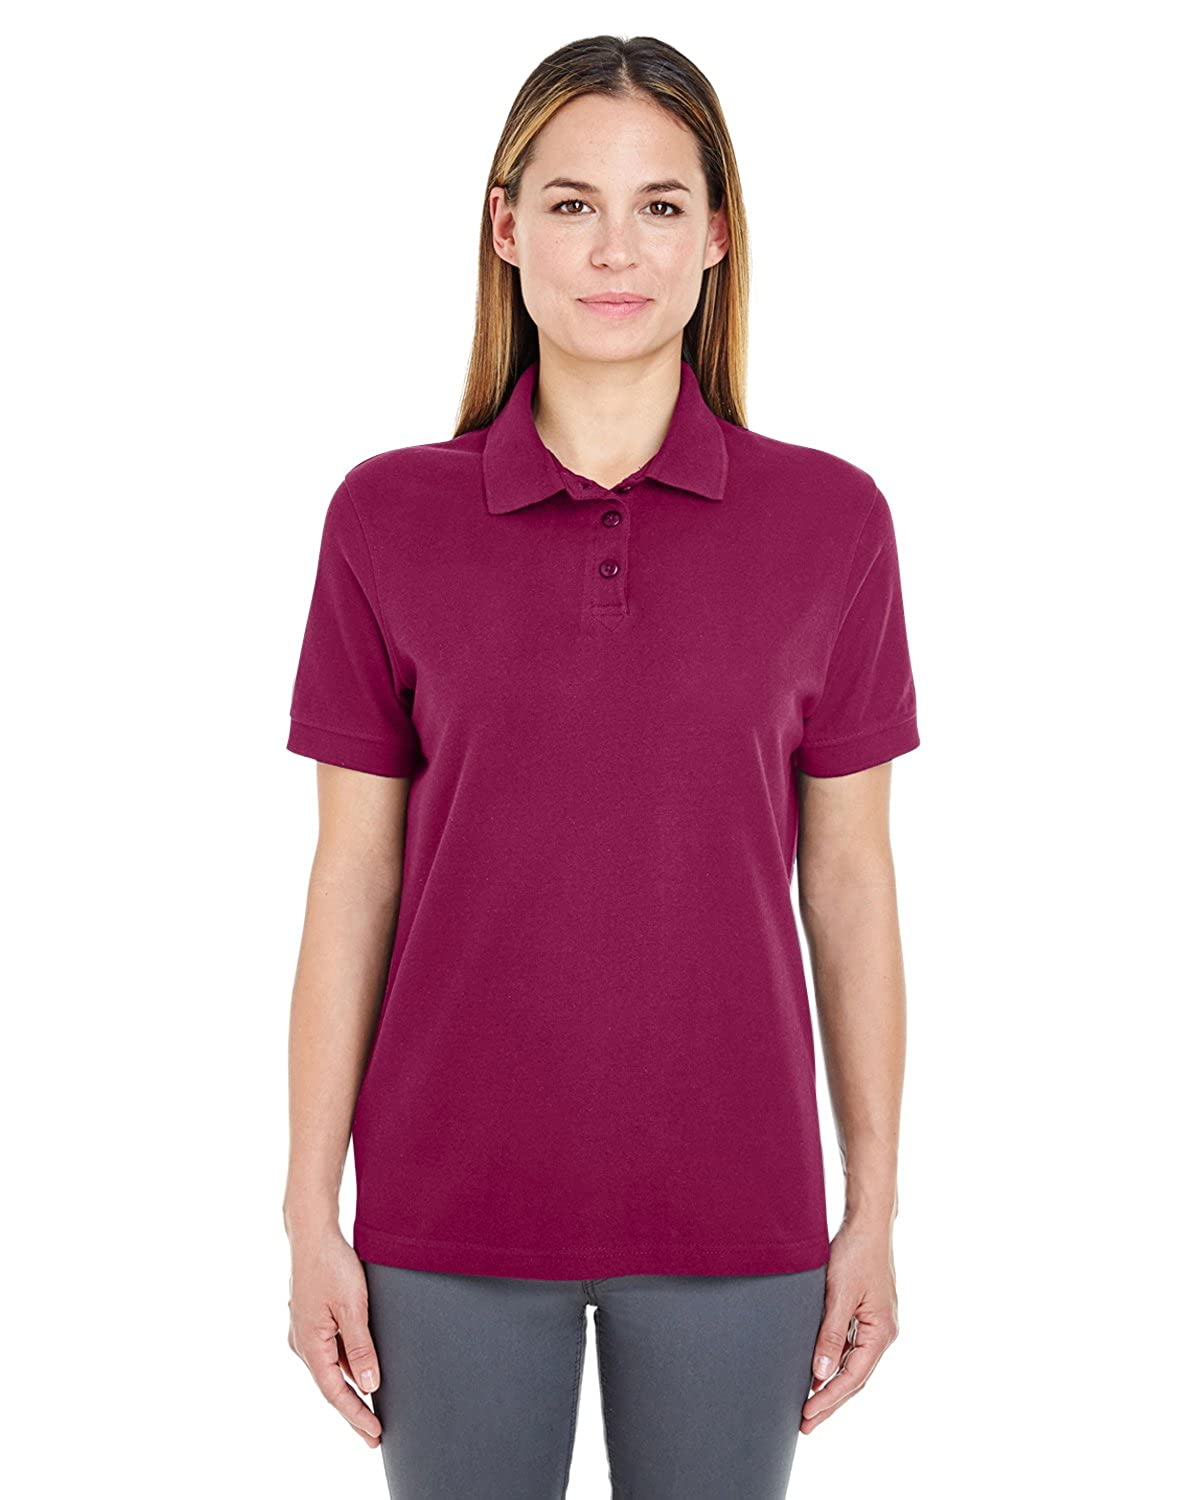 UltraClub 8541 Ladies Whisper Pique Polo Apple